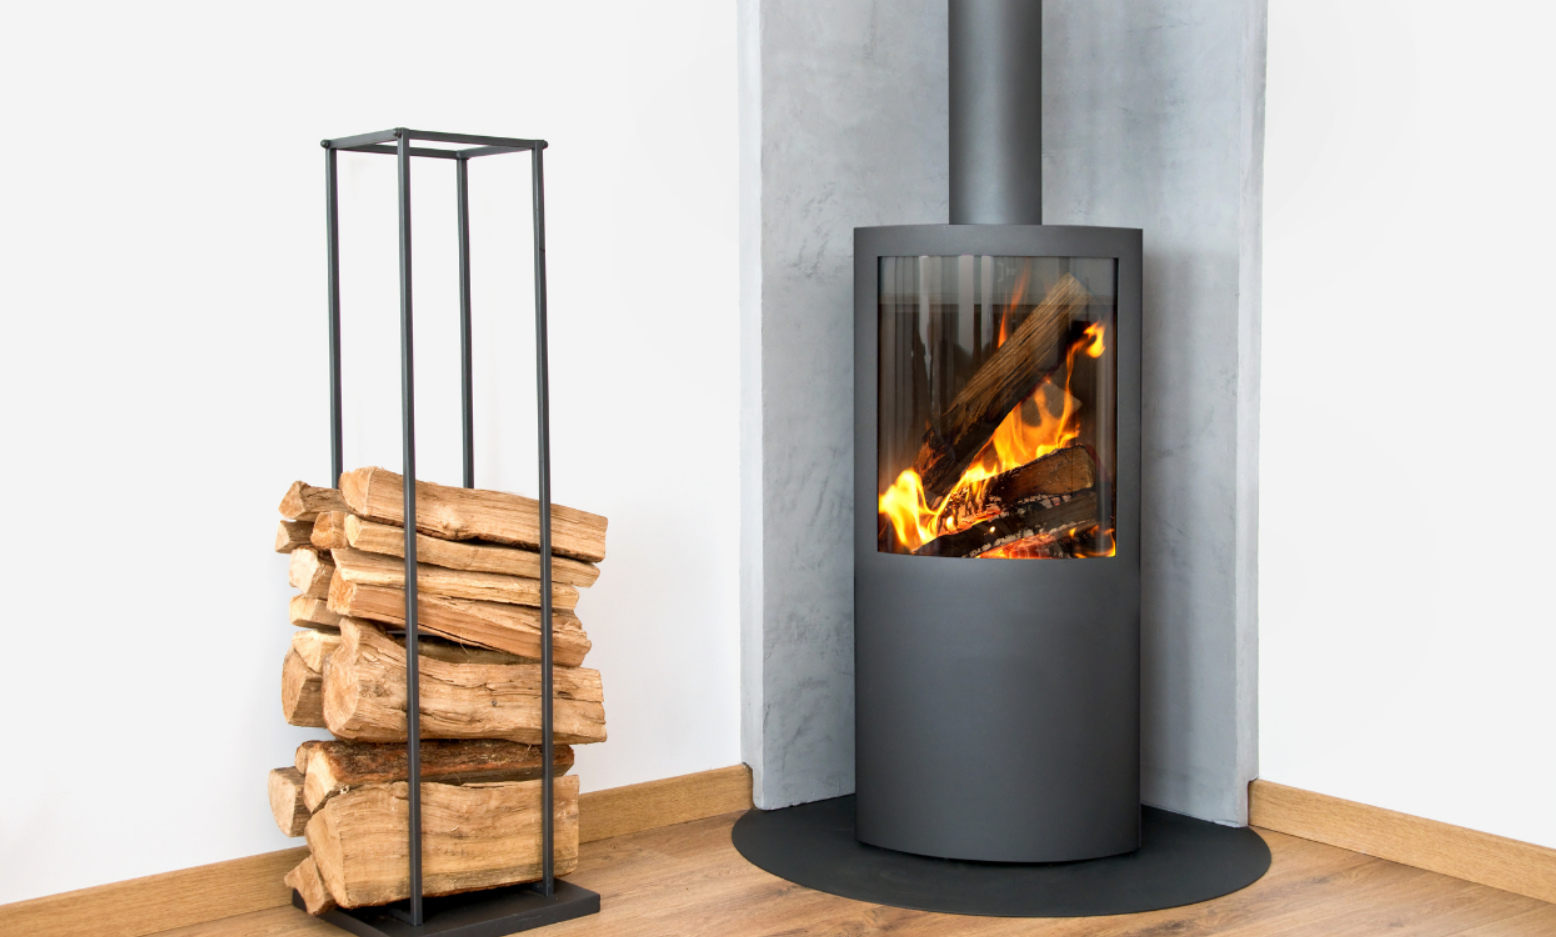 Best Indoor Heating Options for Your New Home